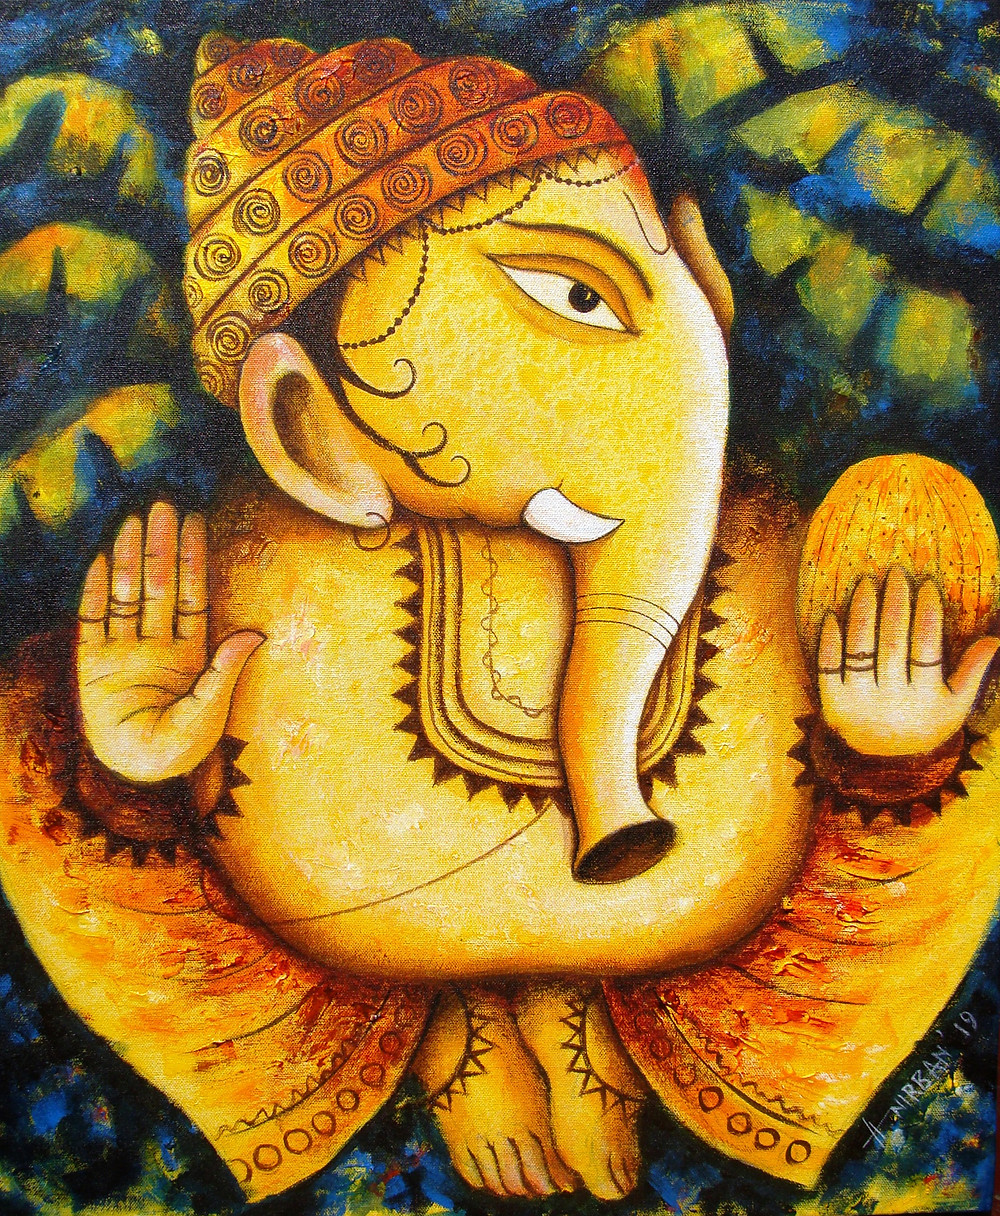 Lord Ganesh Painting in Indian Art